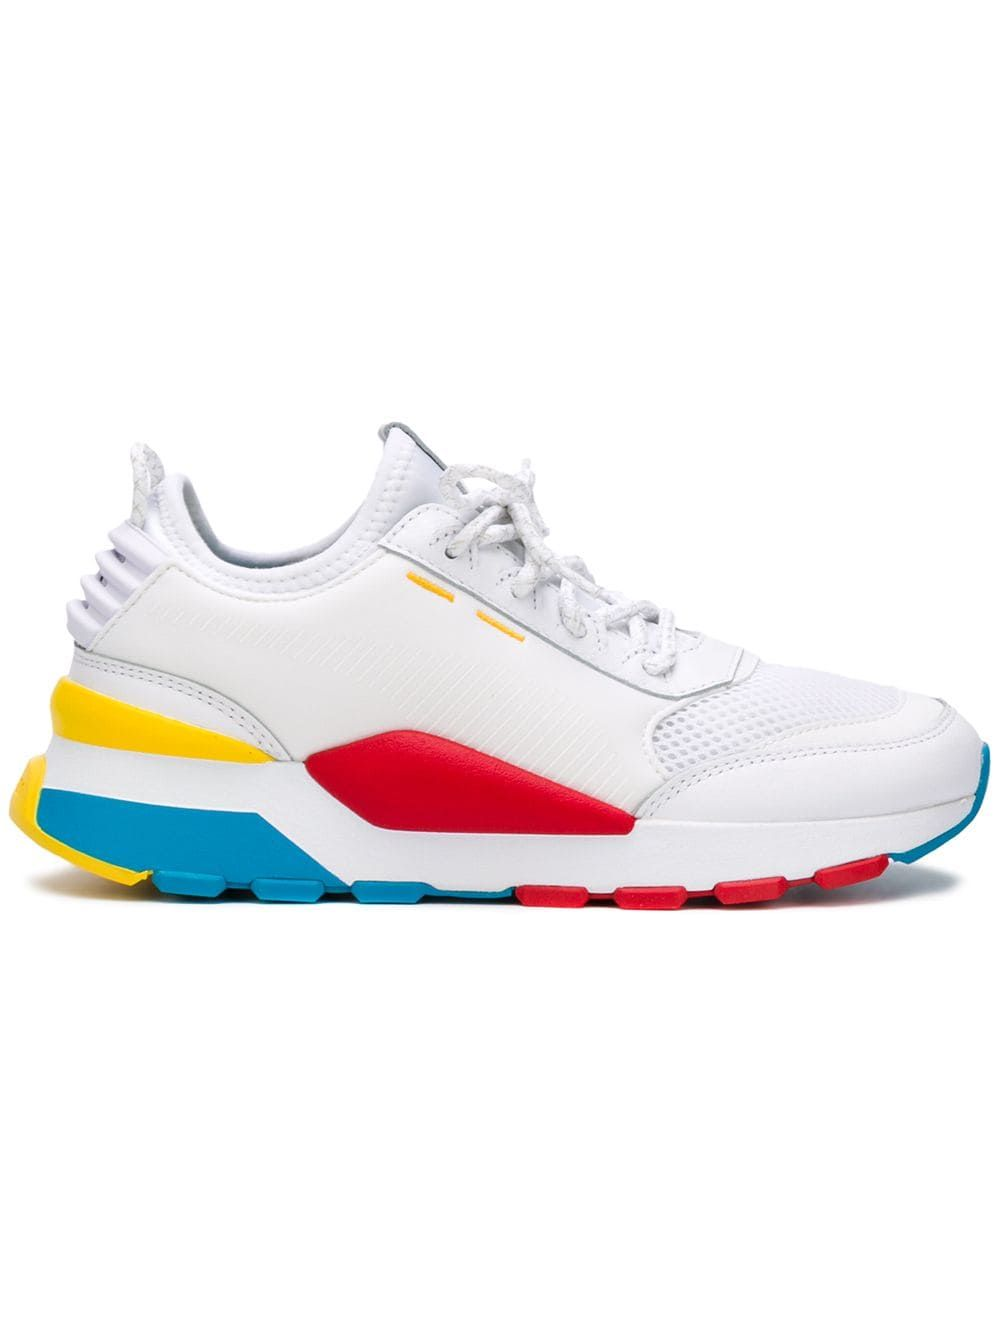 217dd7da2f PUMA PUMA RS-0 PLAY SNEAKERS - WHITE.  puma  shoes